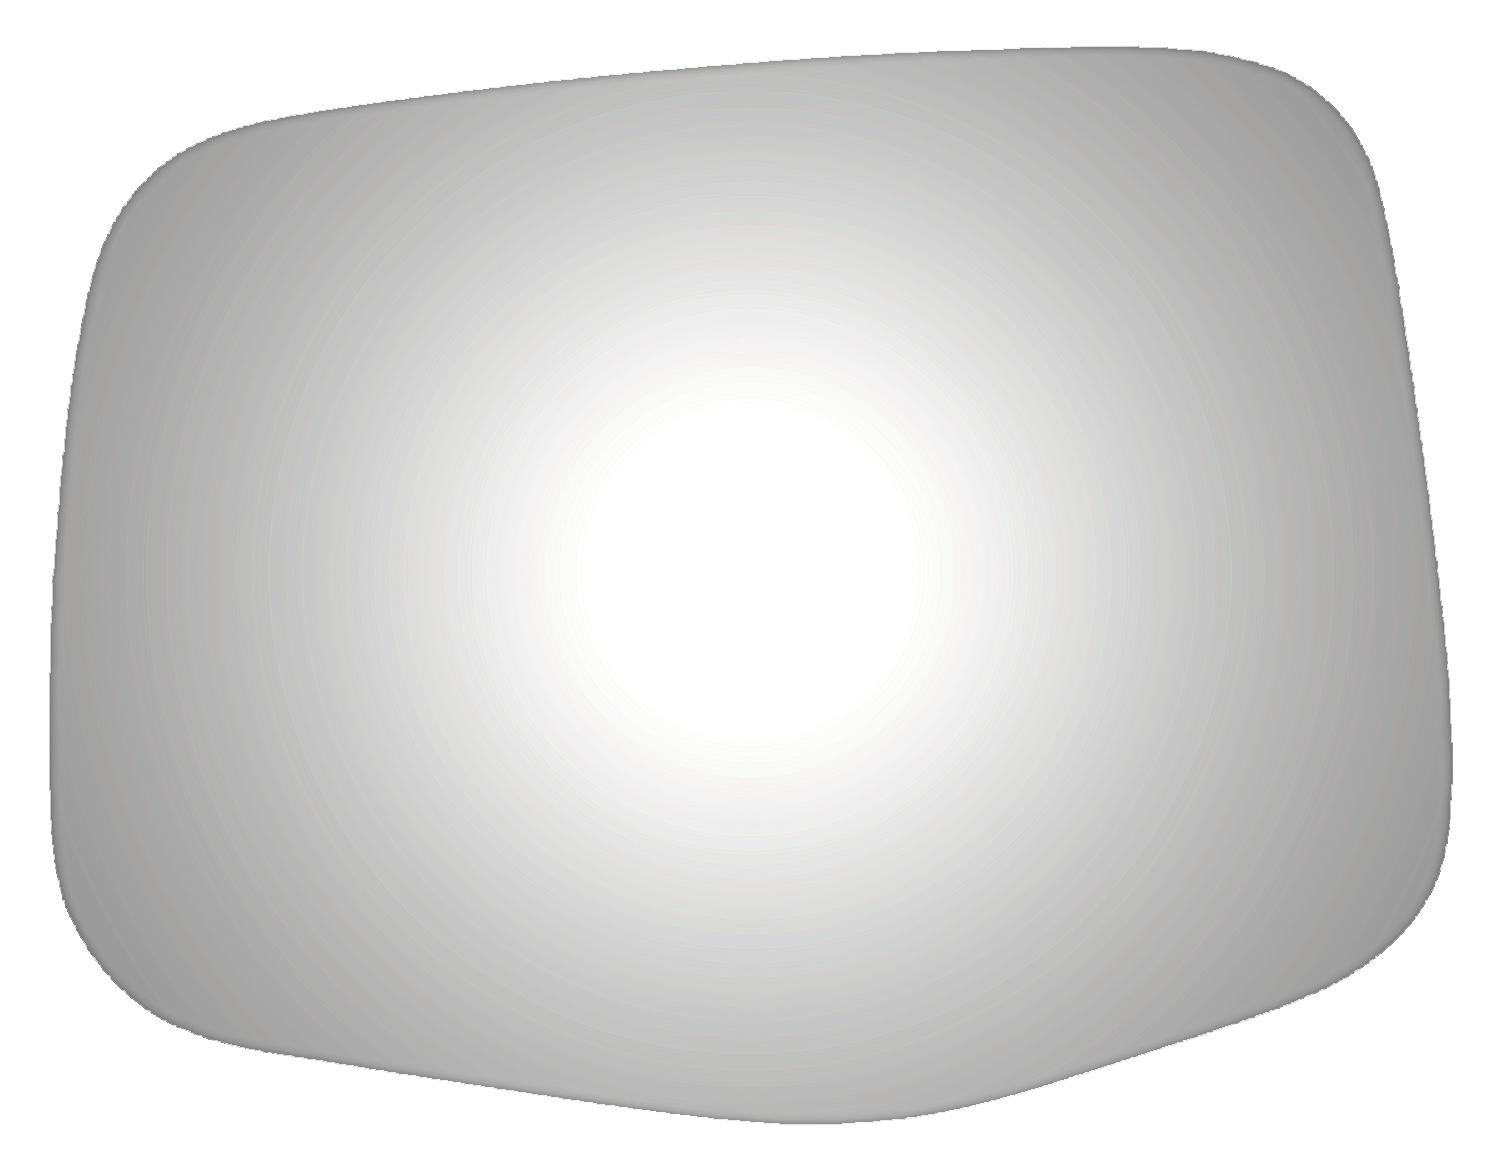 Flat Driver Side Mirror Replacement Glass for 2011-2013 HONDA ODYSSEY